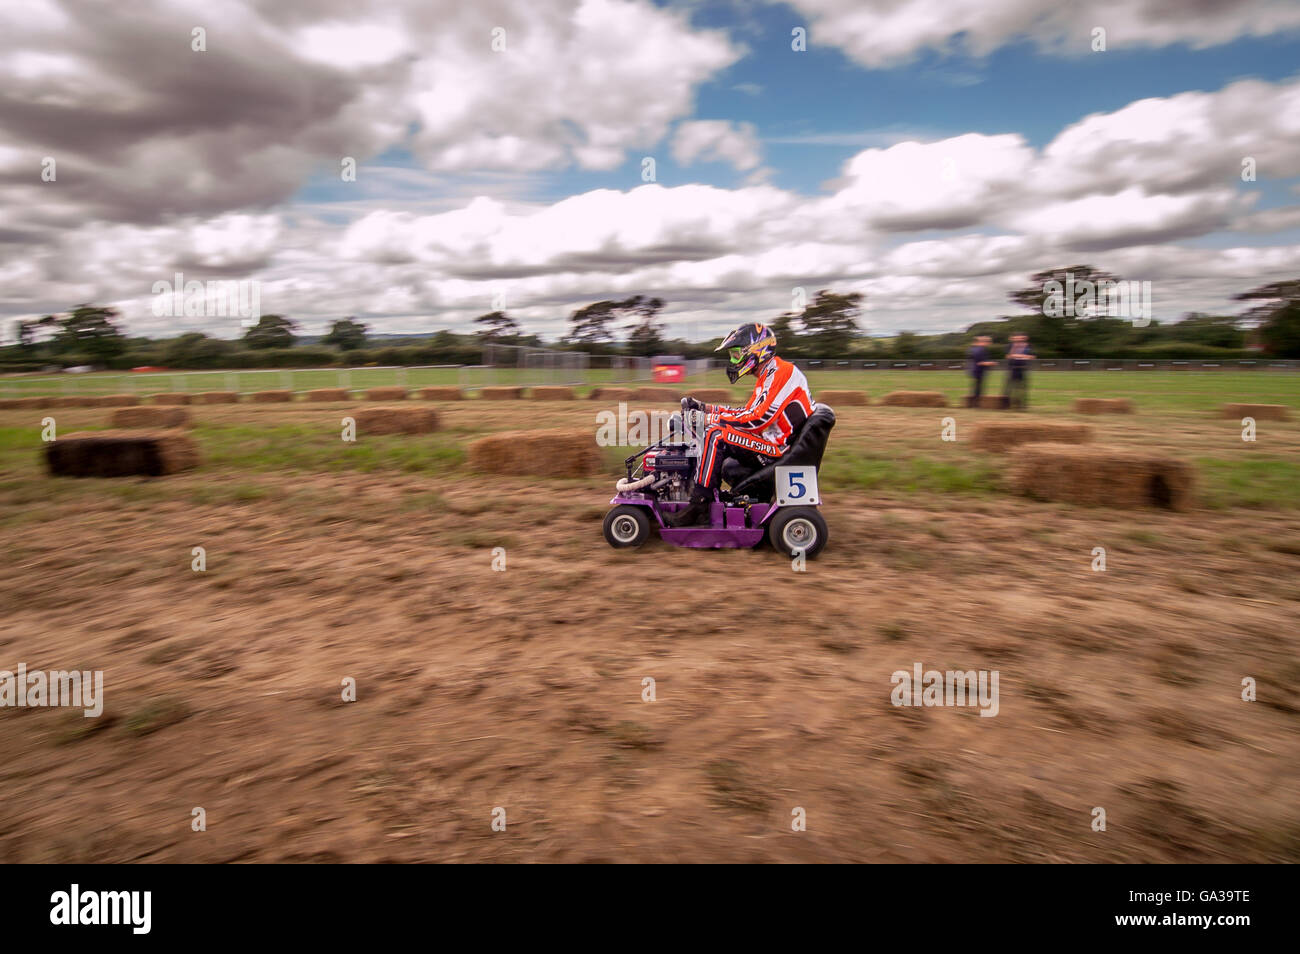 The annual 12-hour lawnmower race at Brinsbury Agricultural College in southern England. - Stock Image